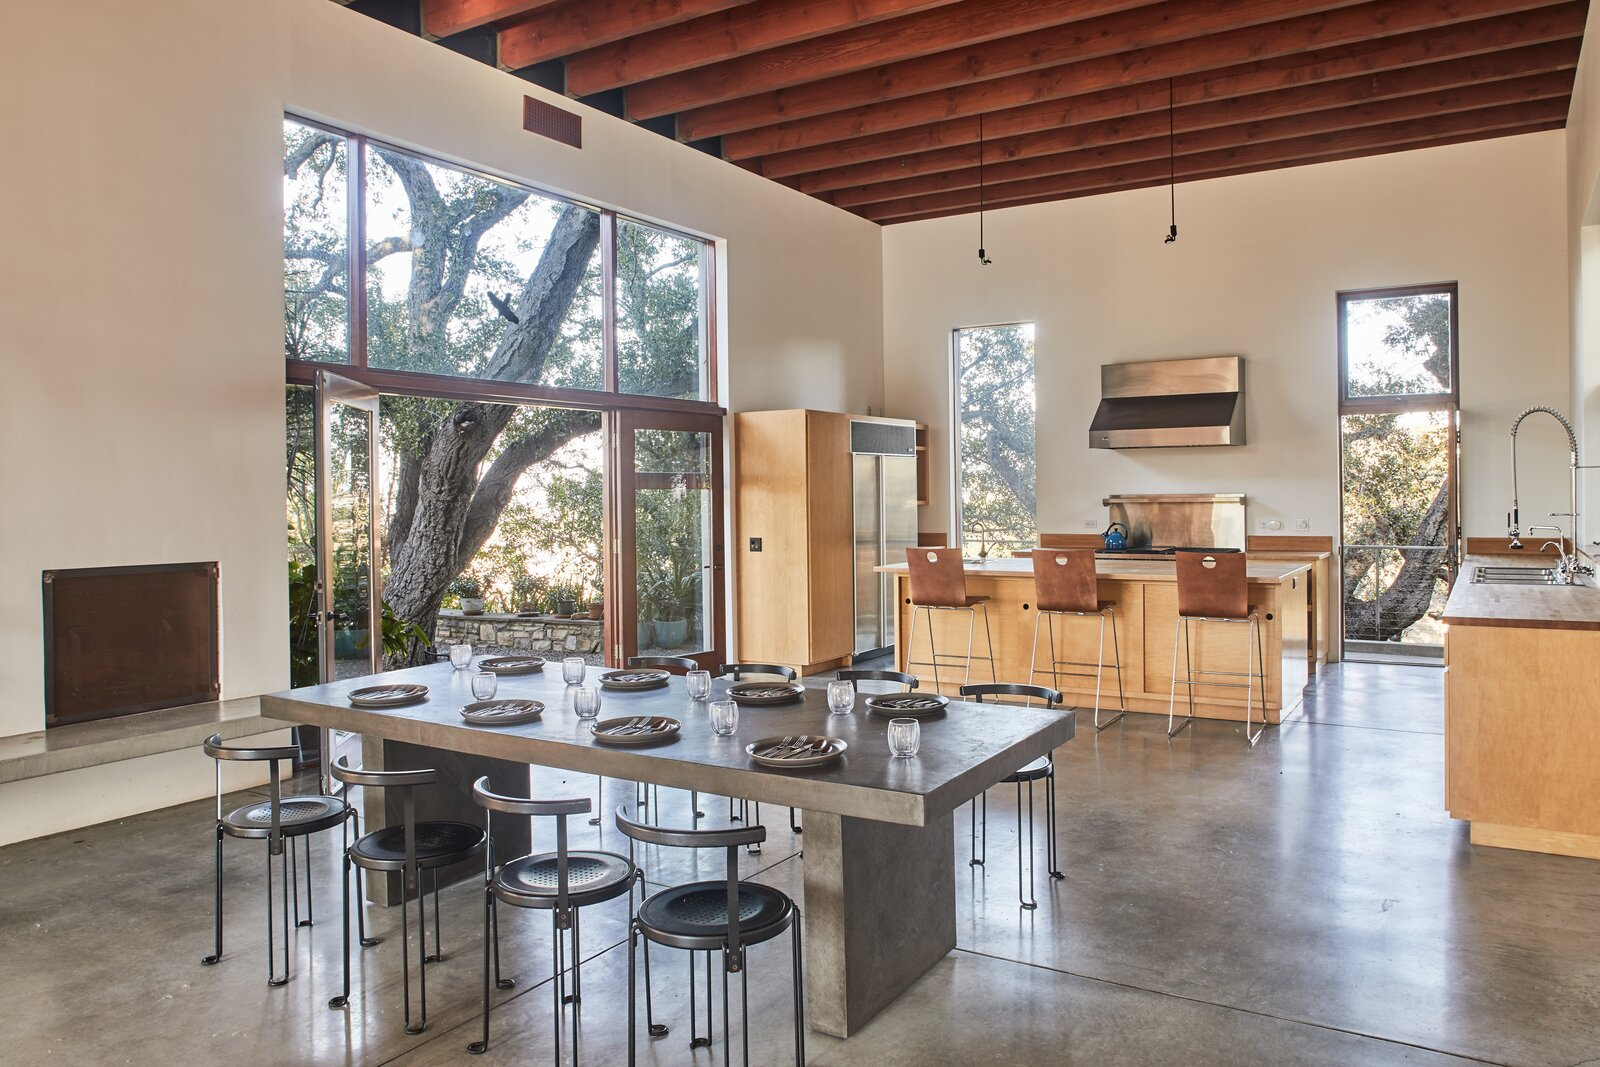 Beverly Hills compound kitchen and dining area